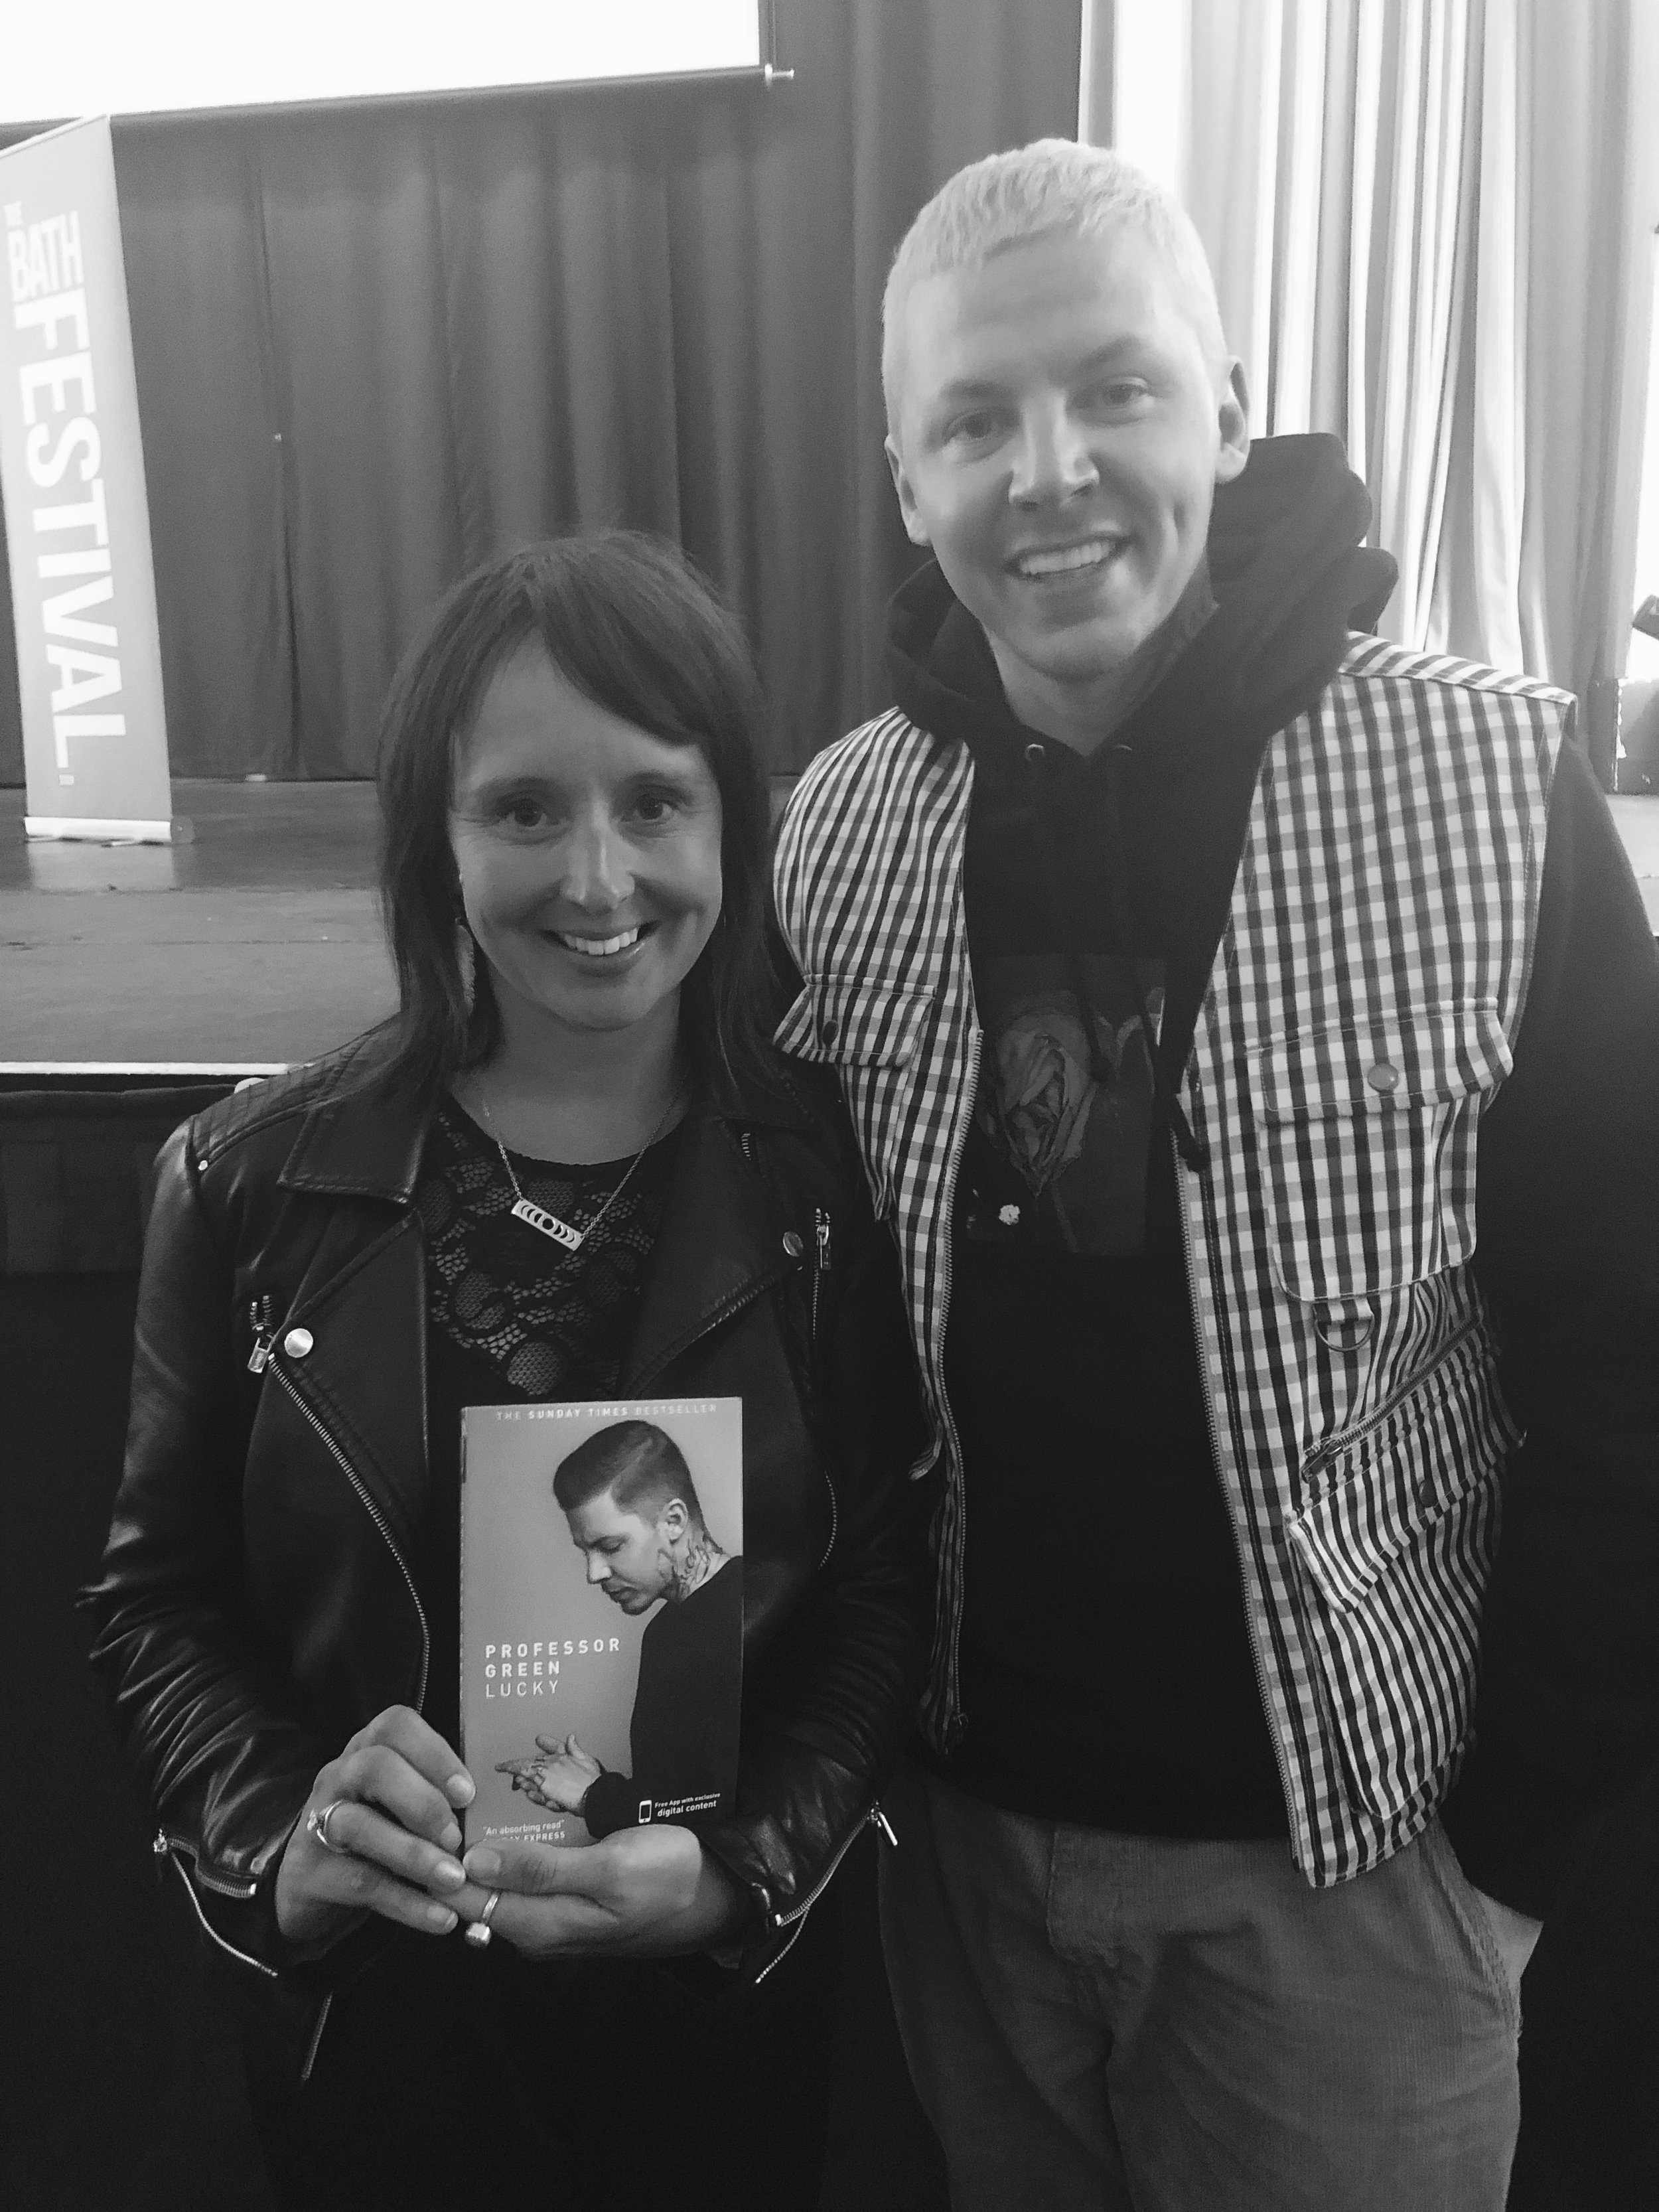 YOGADOO founder, Lucy Aston meets Professor Green